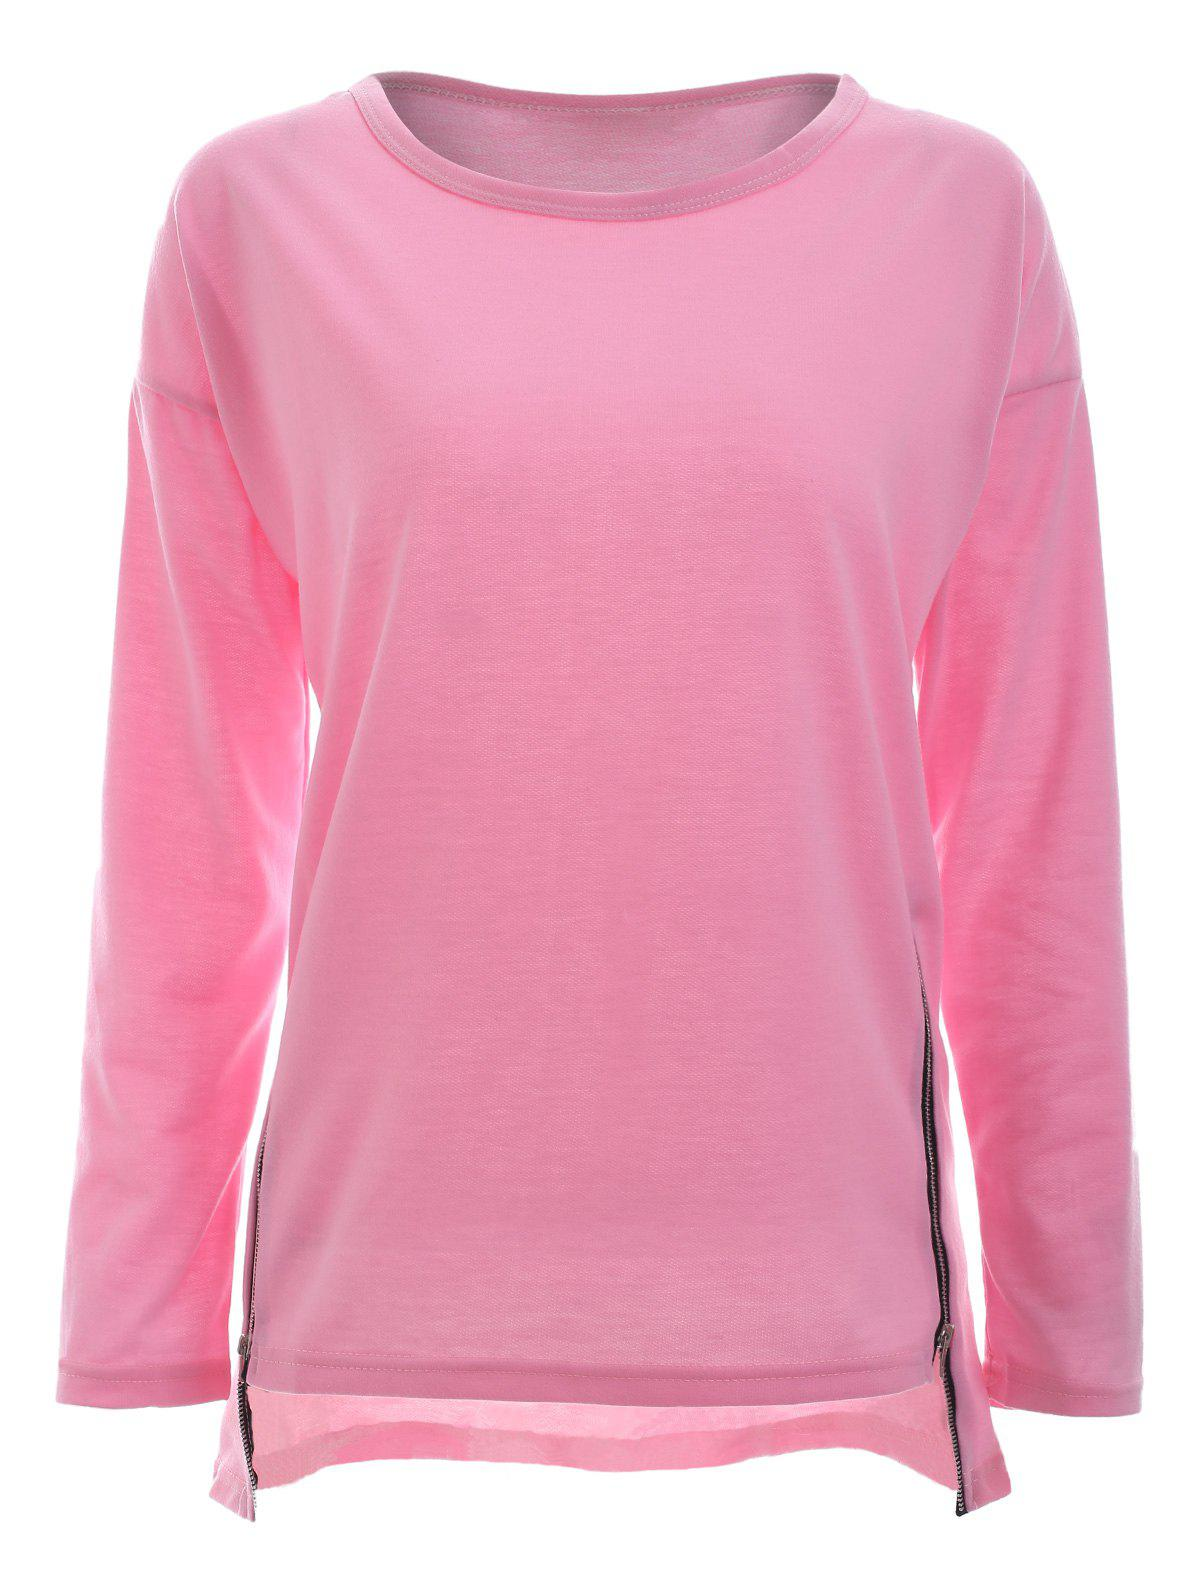 Trendy Long Sleeve Side Zipper Asymmetric Sweatshirt - LIGHT PINK 2XL